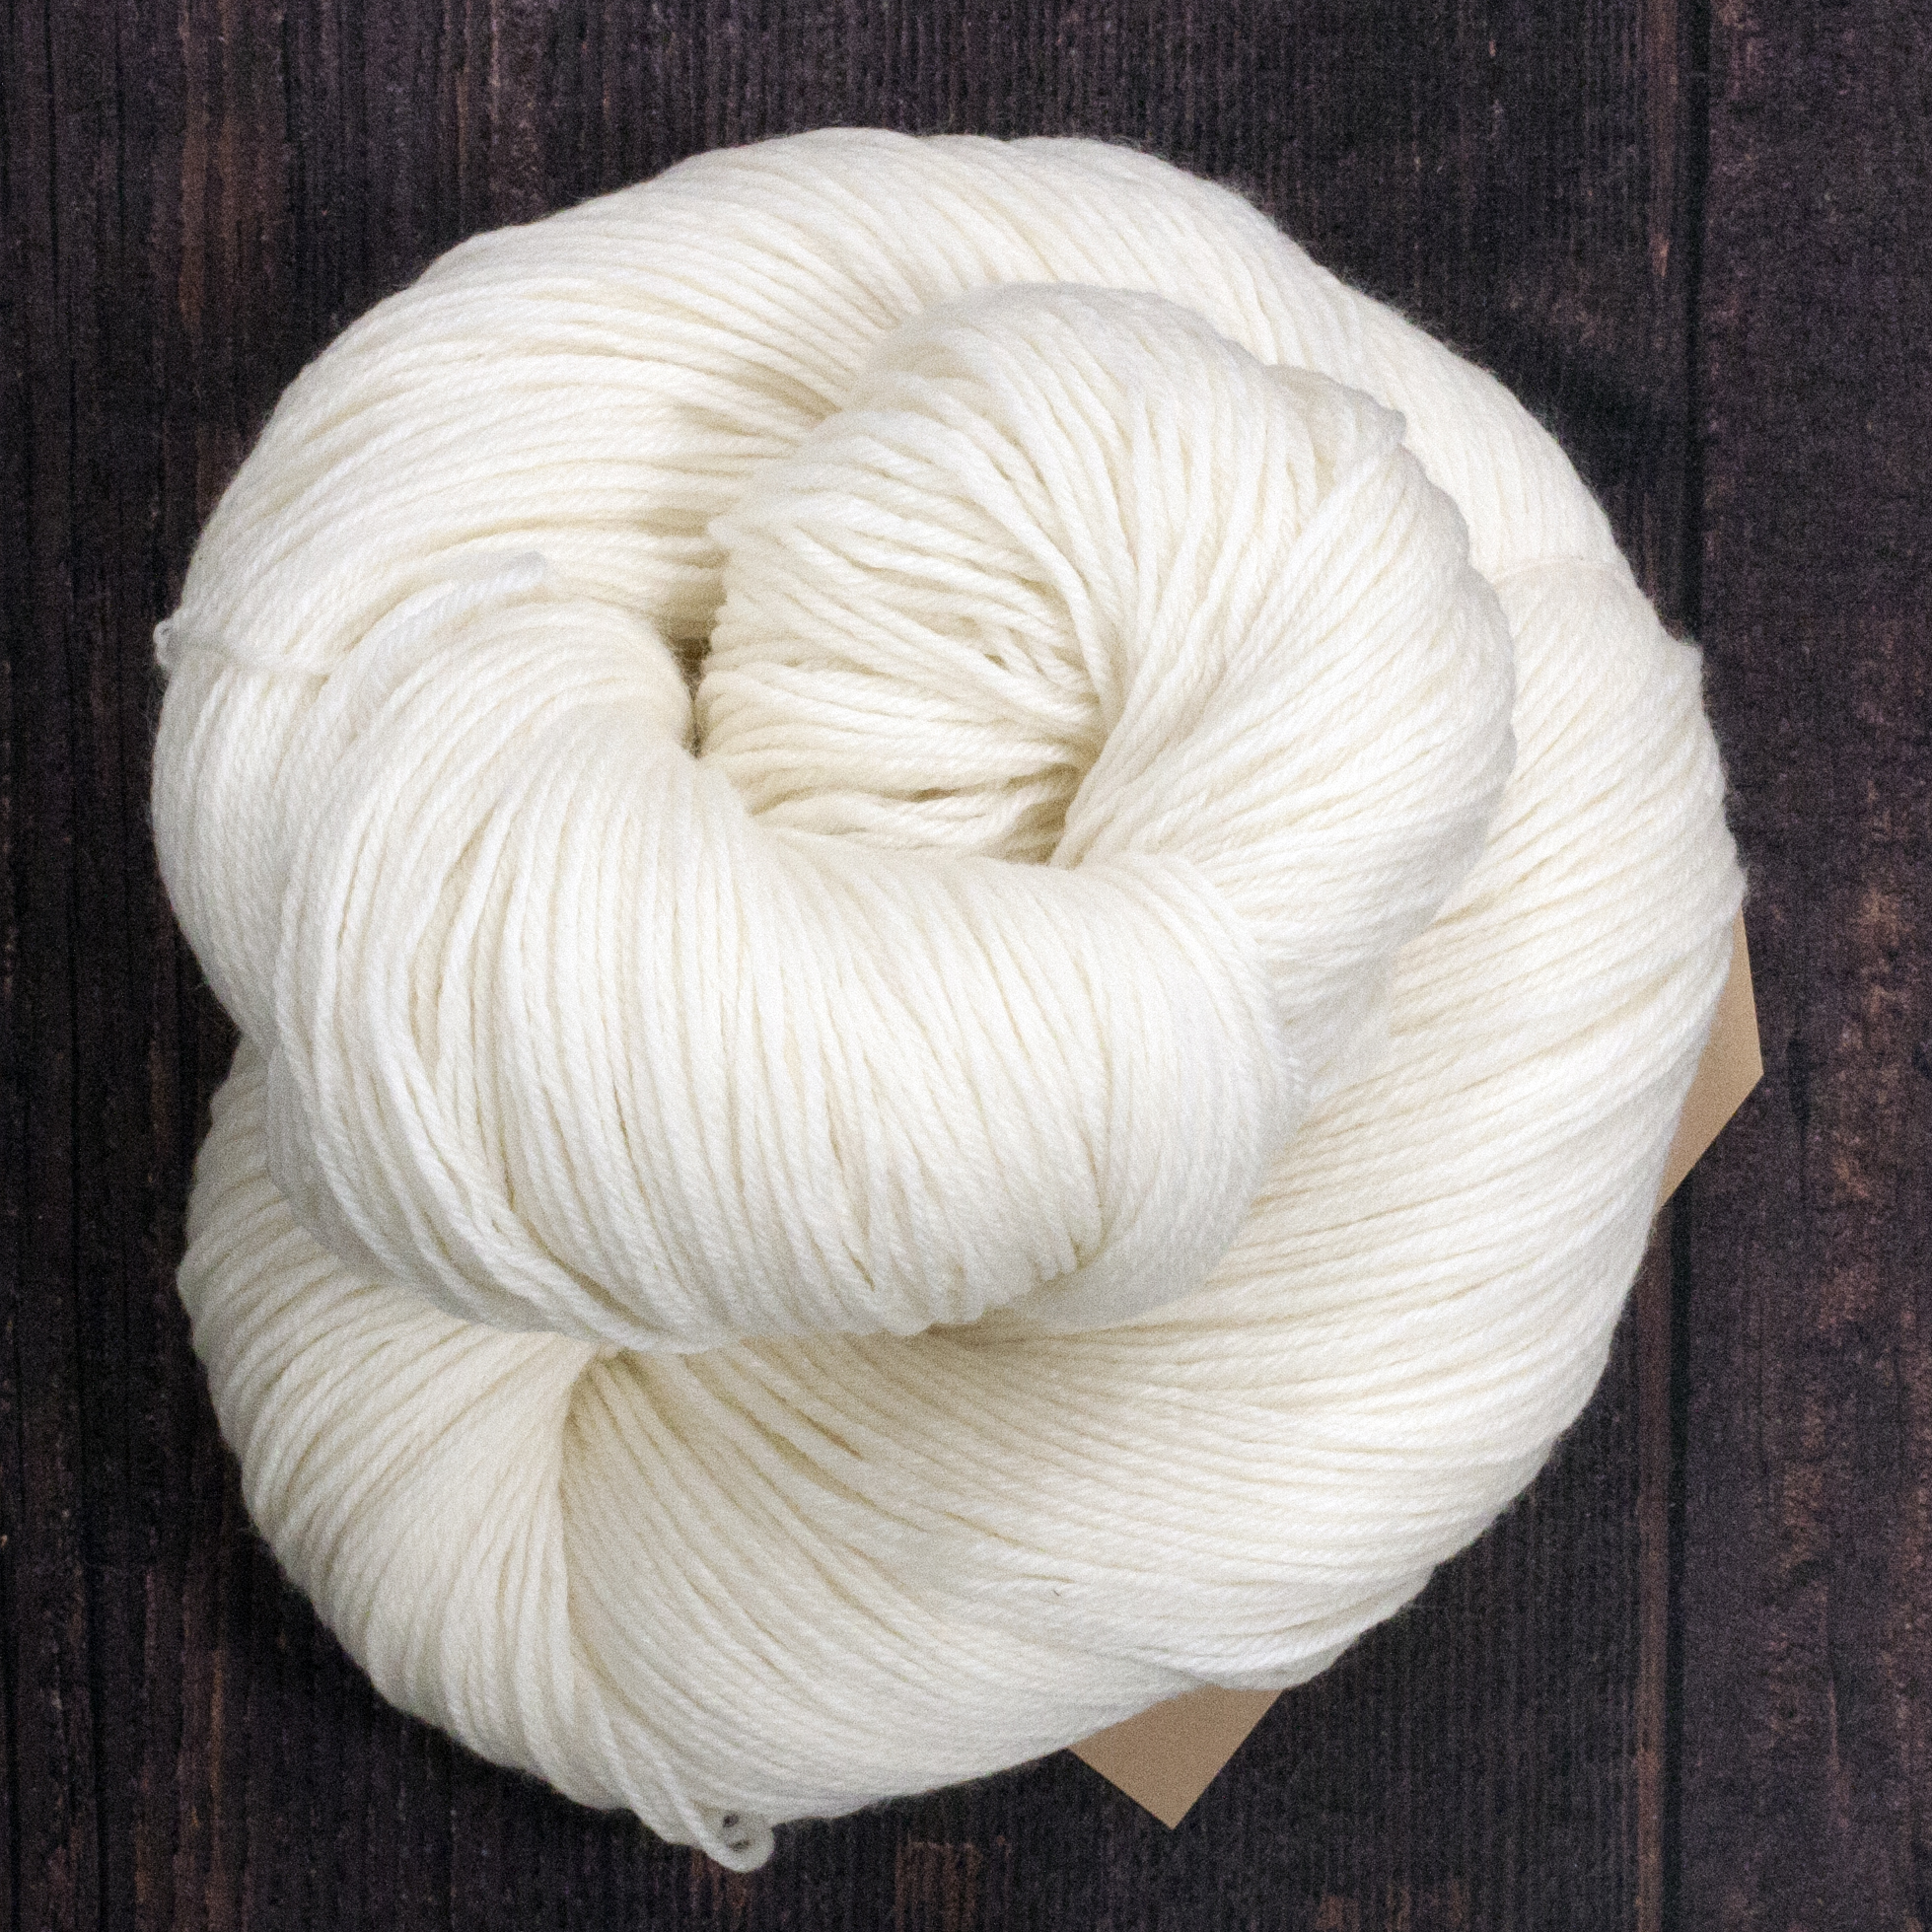 Type 49120   MCN 4ply  80% Superwash Merino Wool 10% Nylon  10% Cashmere  100g Hanks  400m per 100g 4/16nm